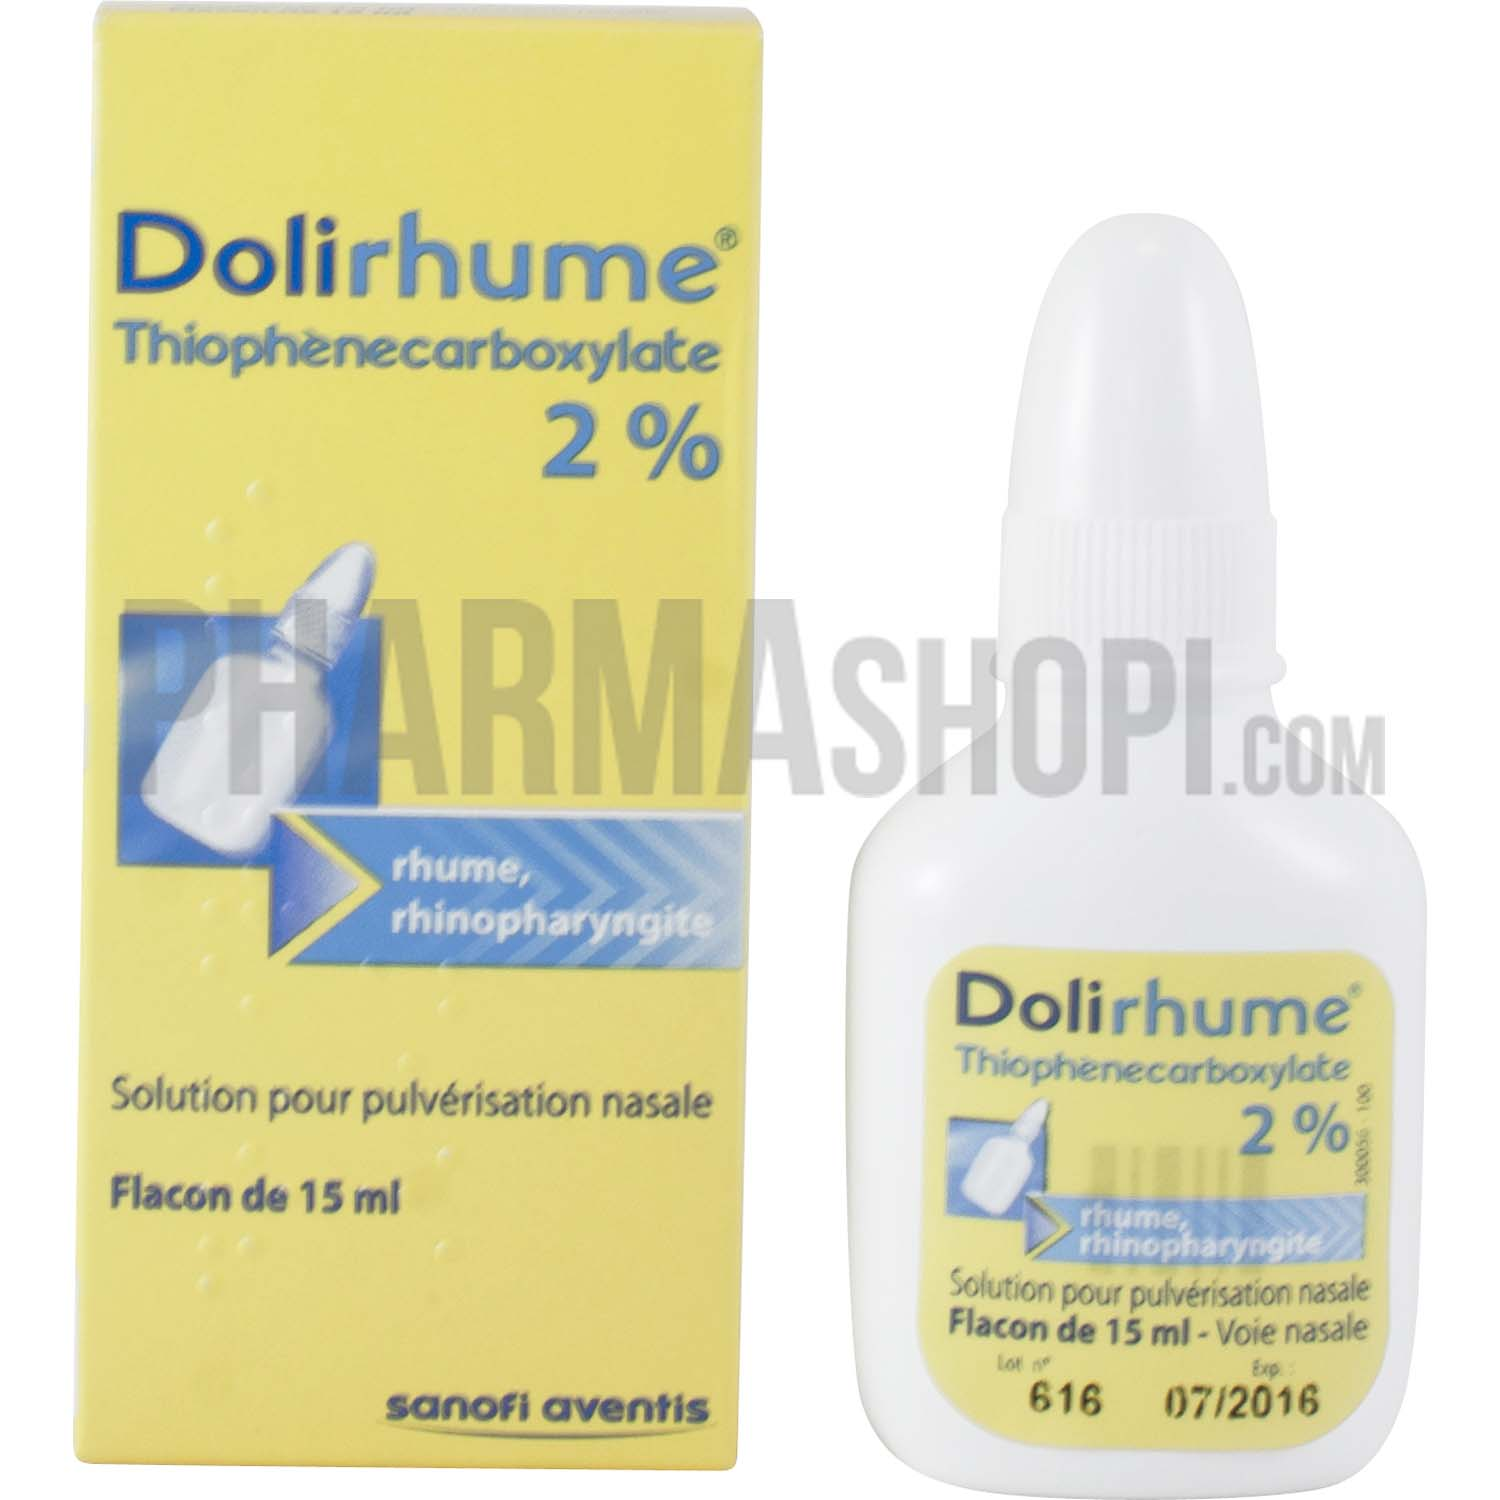 Dolirhume thiophenecarboxylate 2% solution pour